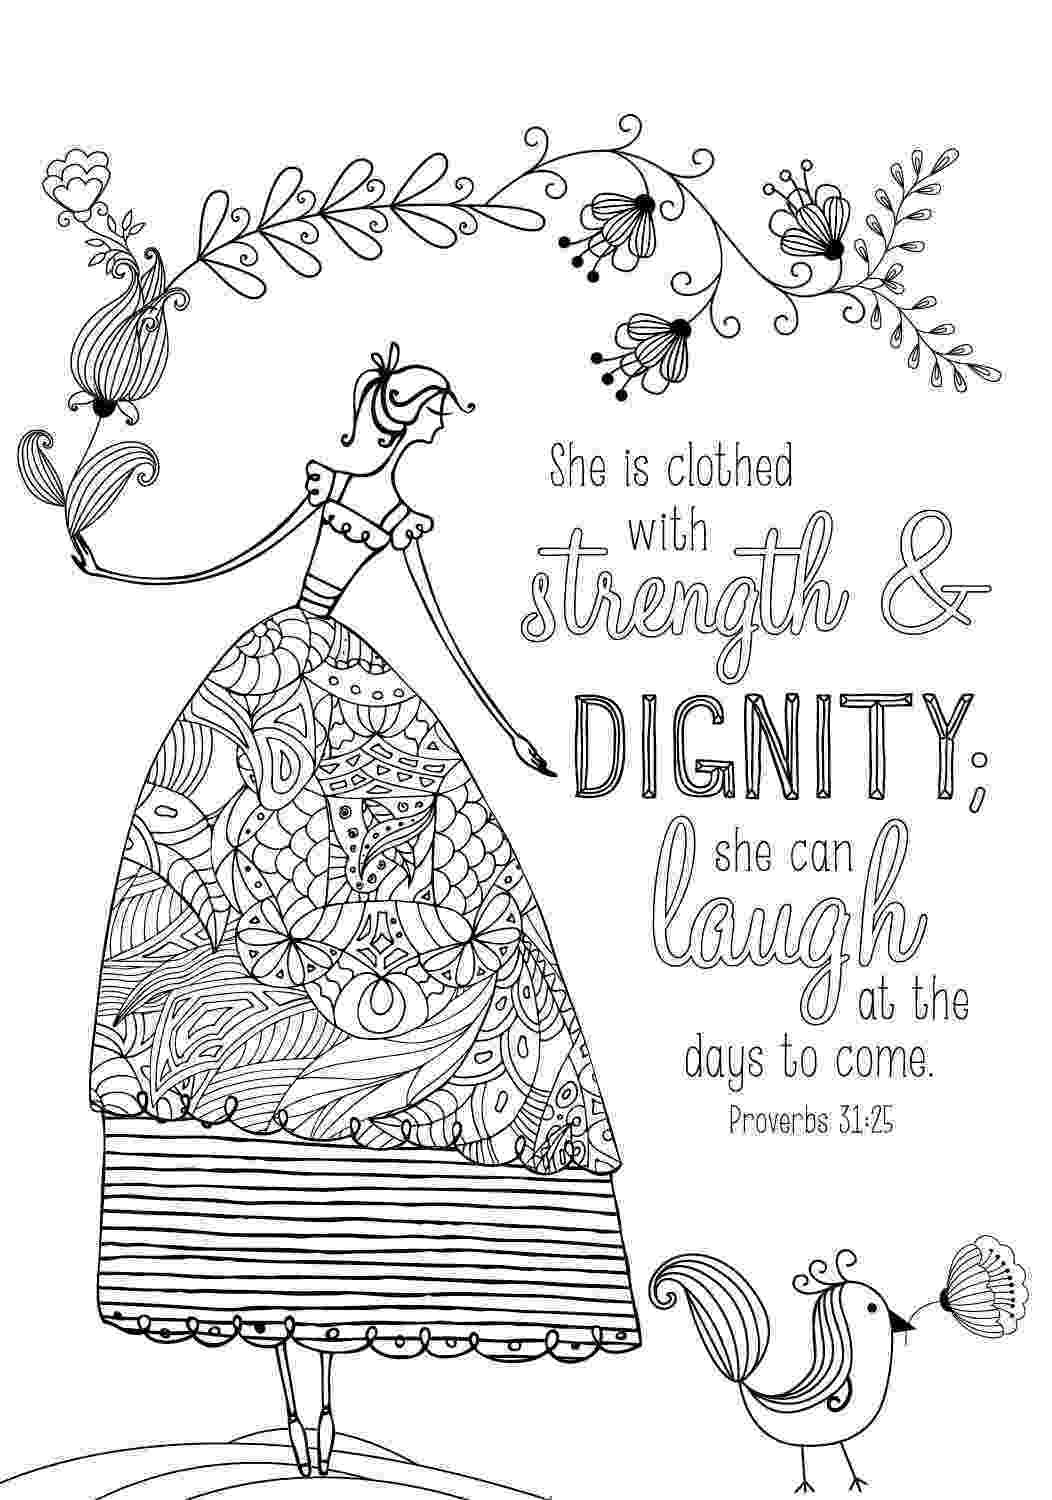 coloring bible bible coloring pages teach your kids through coloring coloring bible